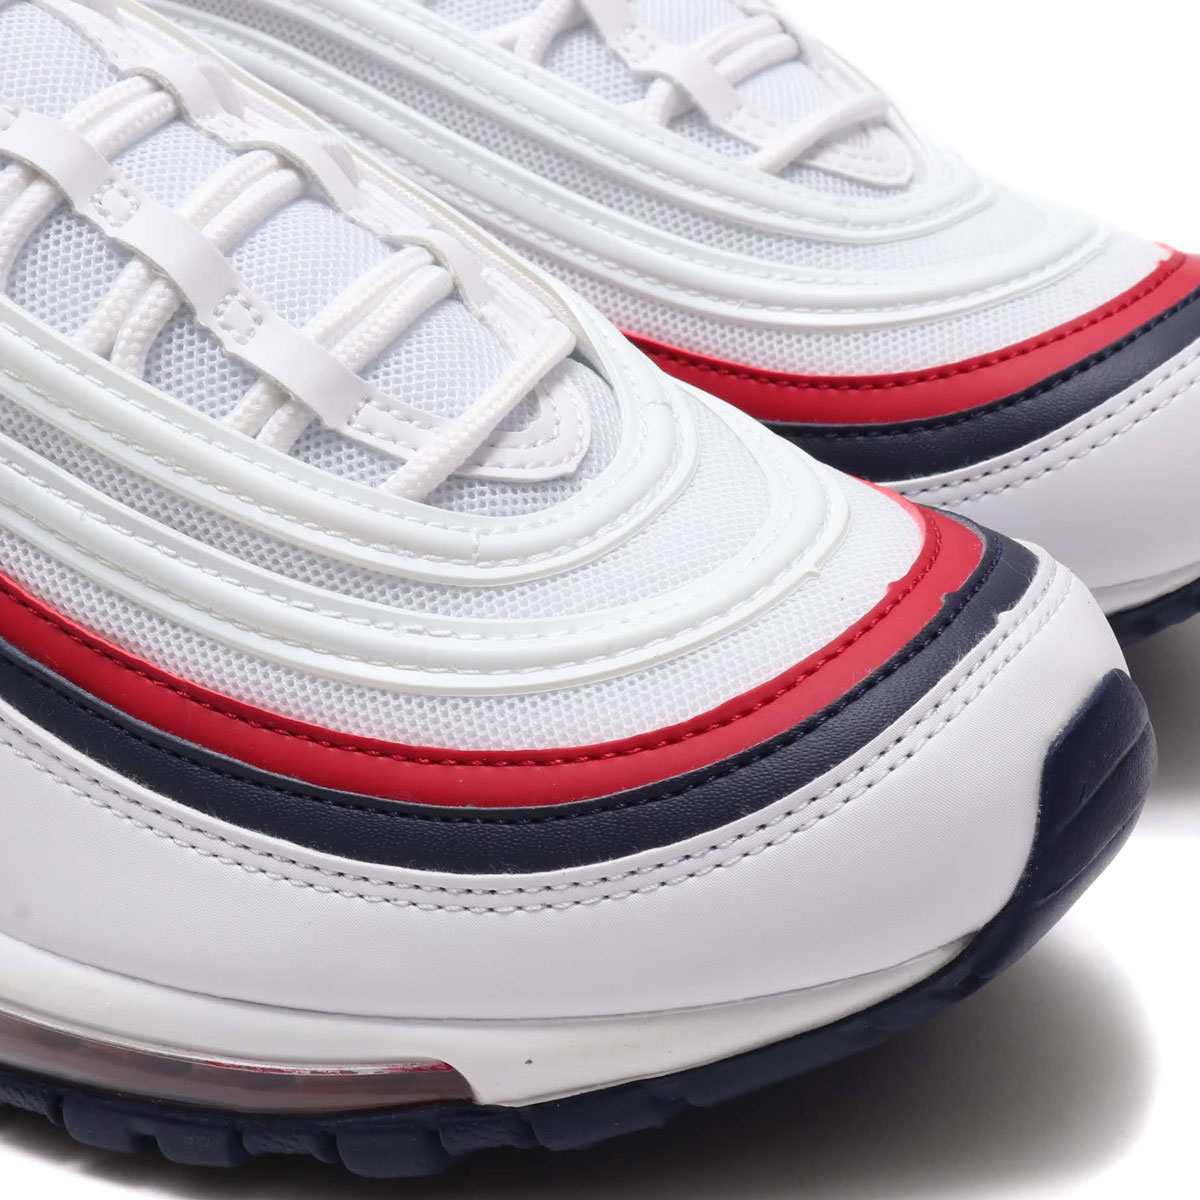 wholesale nike air max 97 white and red bdcd2 99783 255fab579